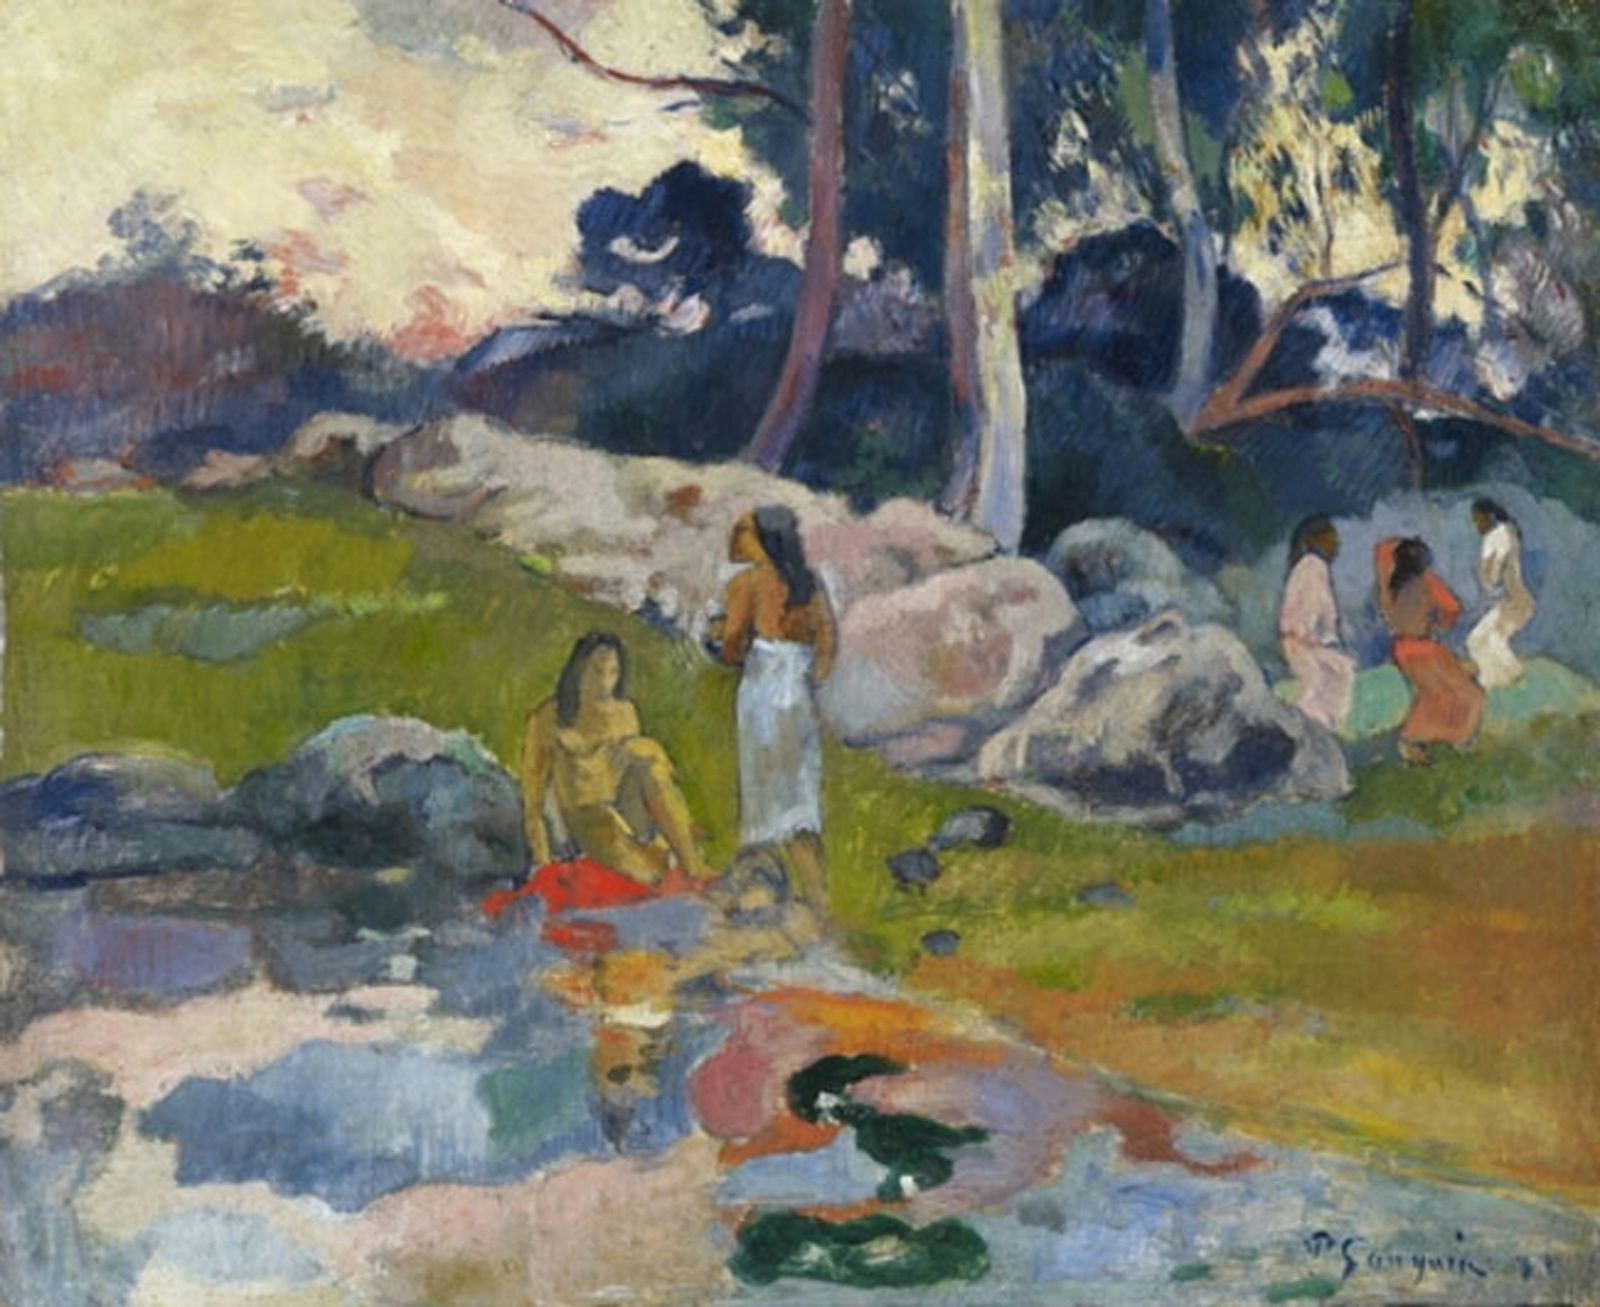 """Femmes au bord de la rivière"", 1892 de Paul Gauguin - Courtesy Collection Alicia KOPLOWITZ - Grupo Omega Capital"